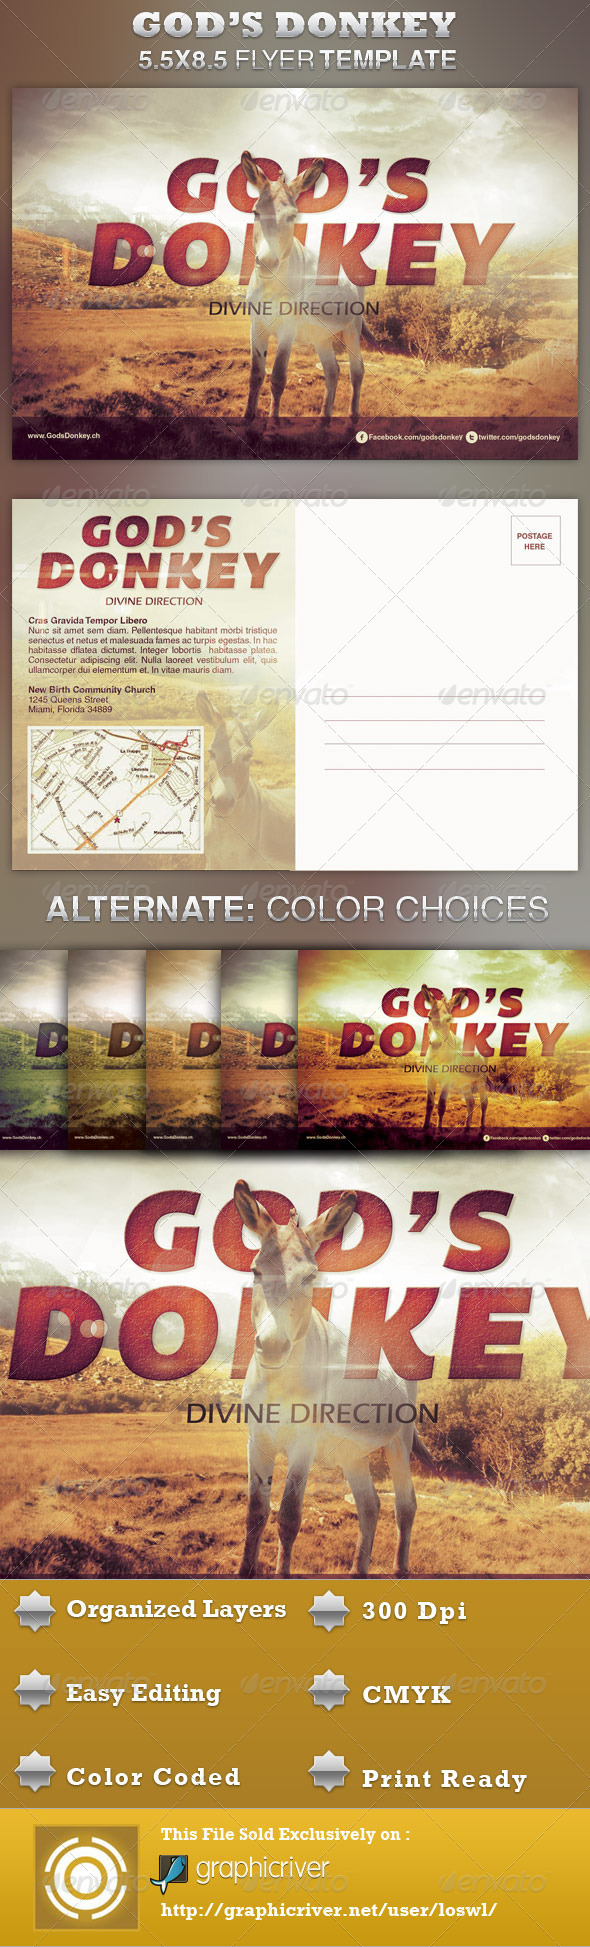 God's Donkey Church Flyer Template - Church Flyers